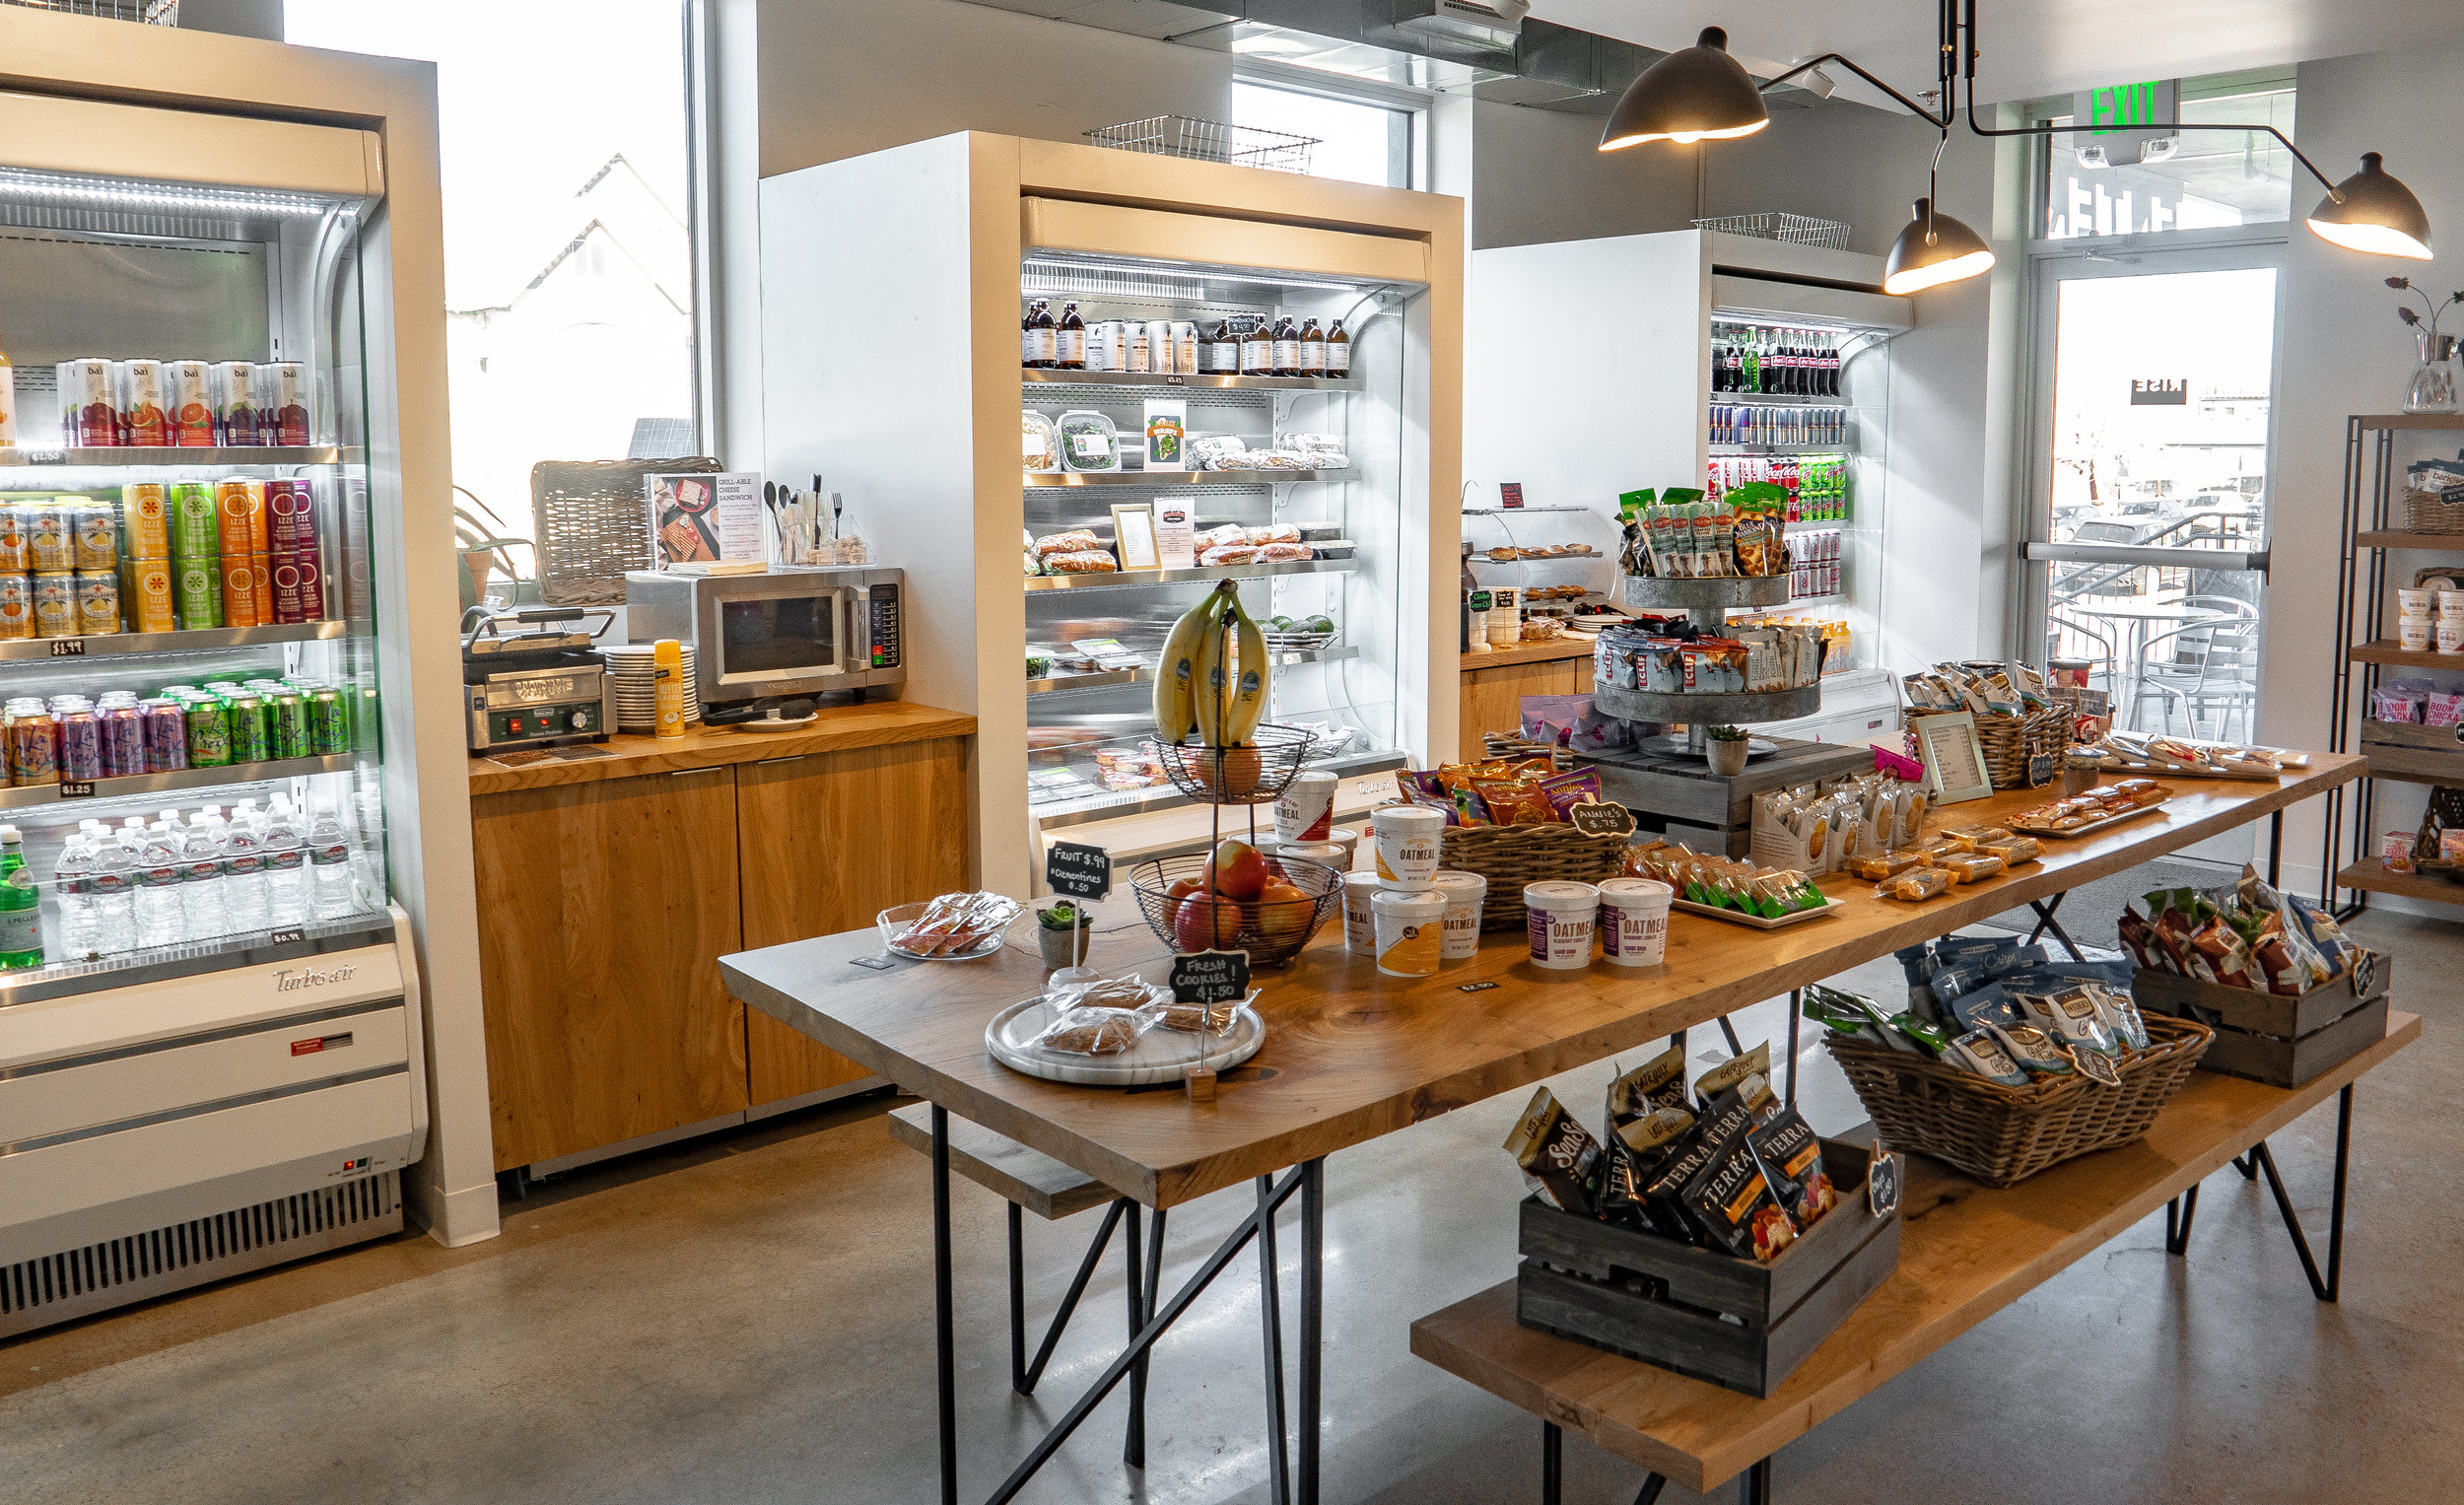 TASTY LOCAL DENVER EATS - Fresh, delicious Breakfast and Lunch offerings brought to you by local small businesses across the Denver area. From Onefold Breakfast Burritos to Lazo Empanadas, Sushi, Poke, and more — We support eating local!